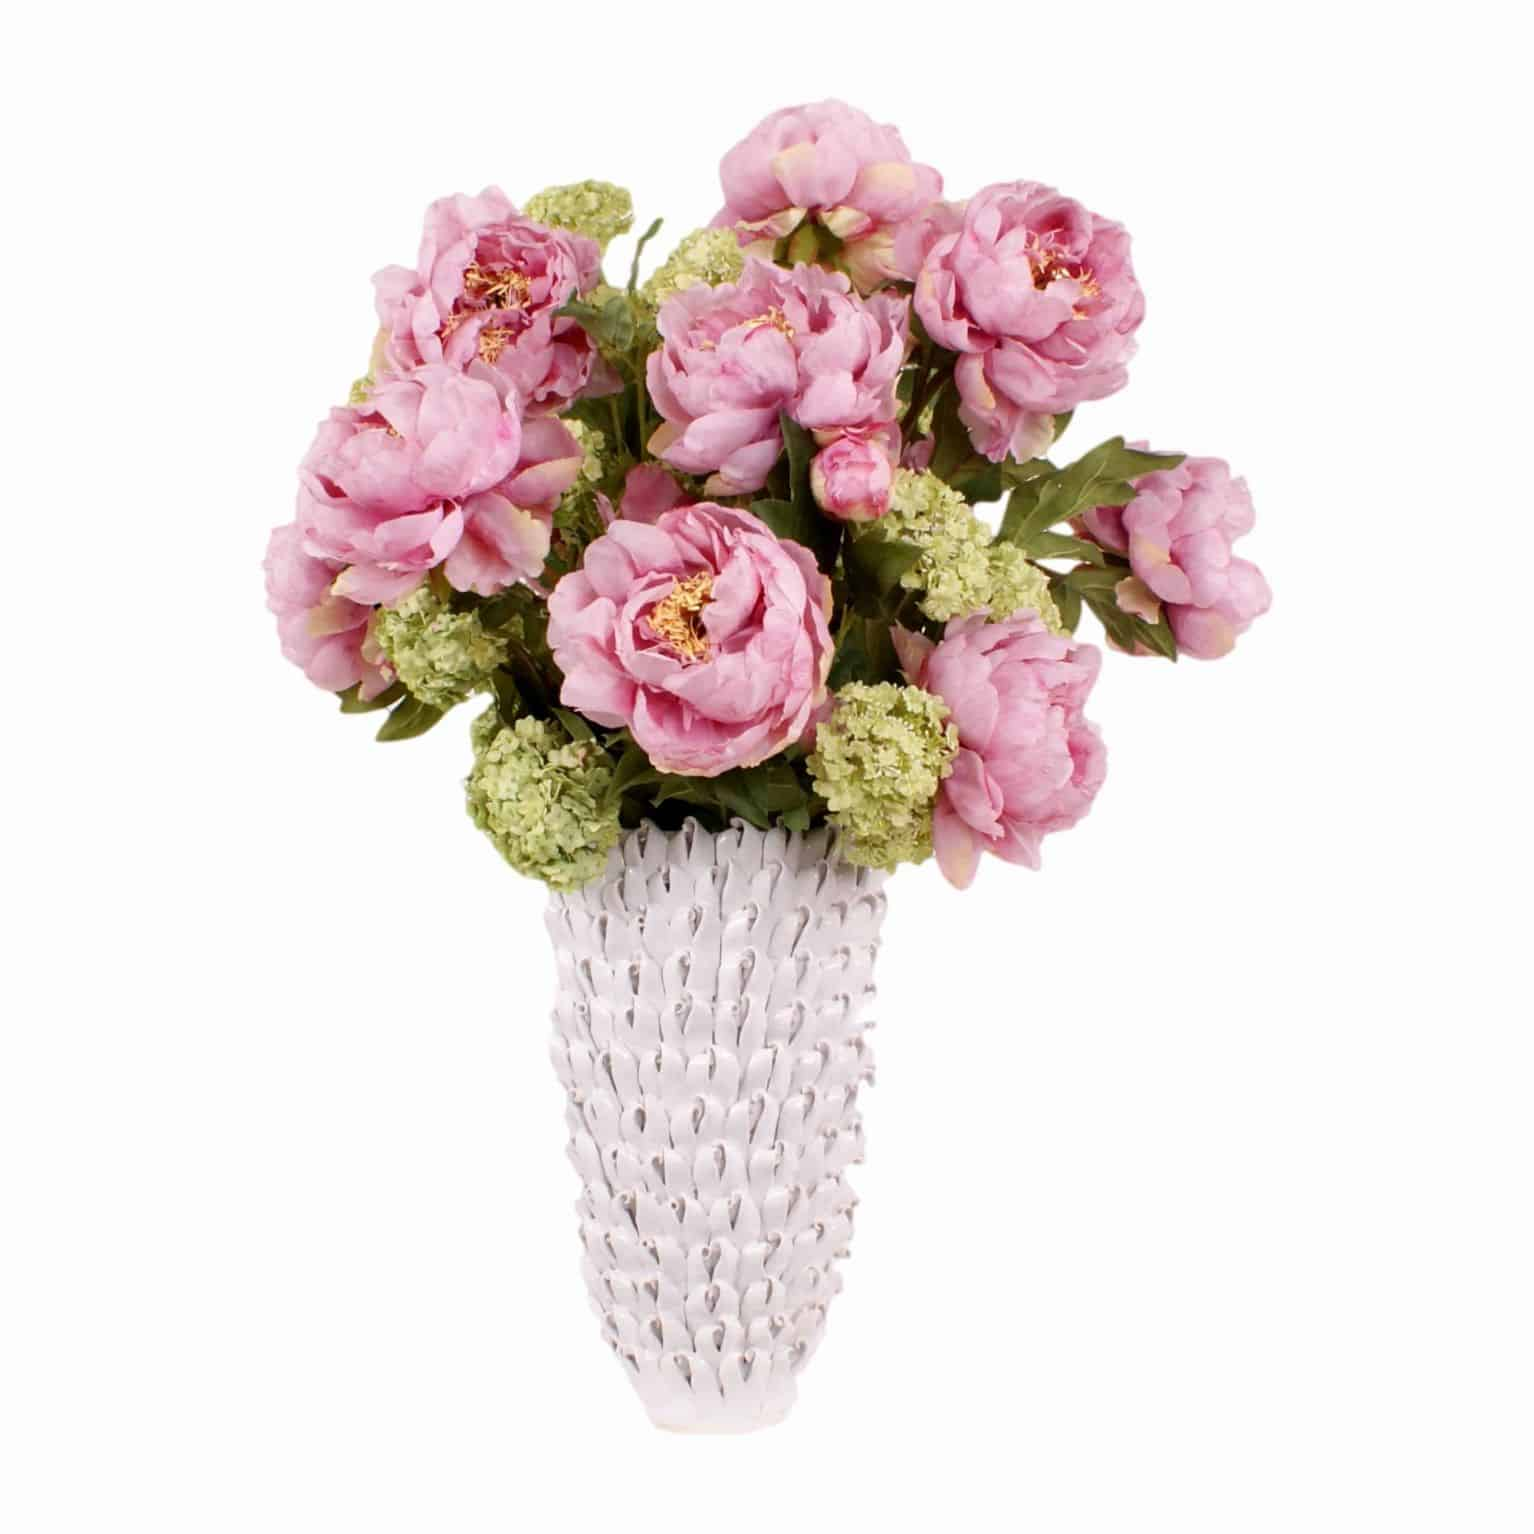 Shop for bloomed silk flower soft pink peonies with ruffled petals & flawless pollen. Mixed with artificial green guelder rose in a ceramic seashell vase.